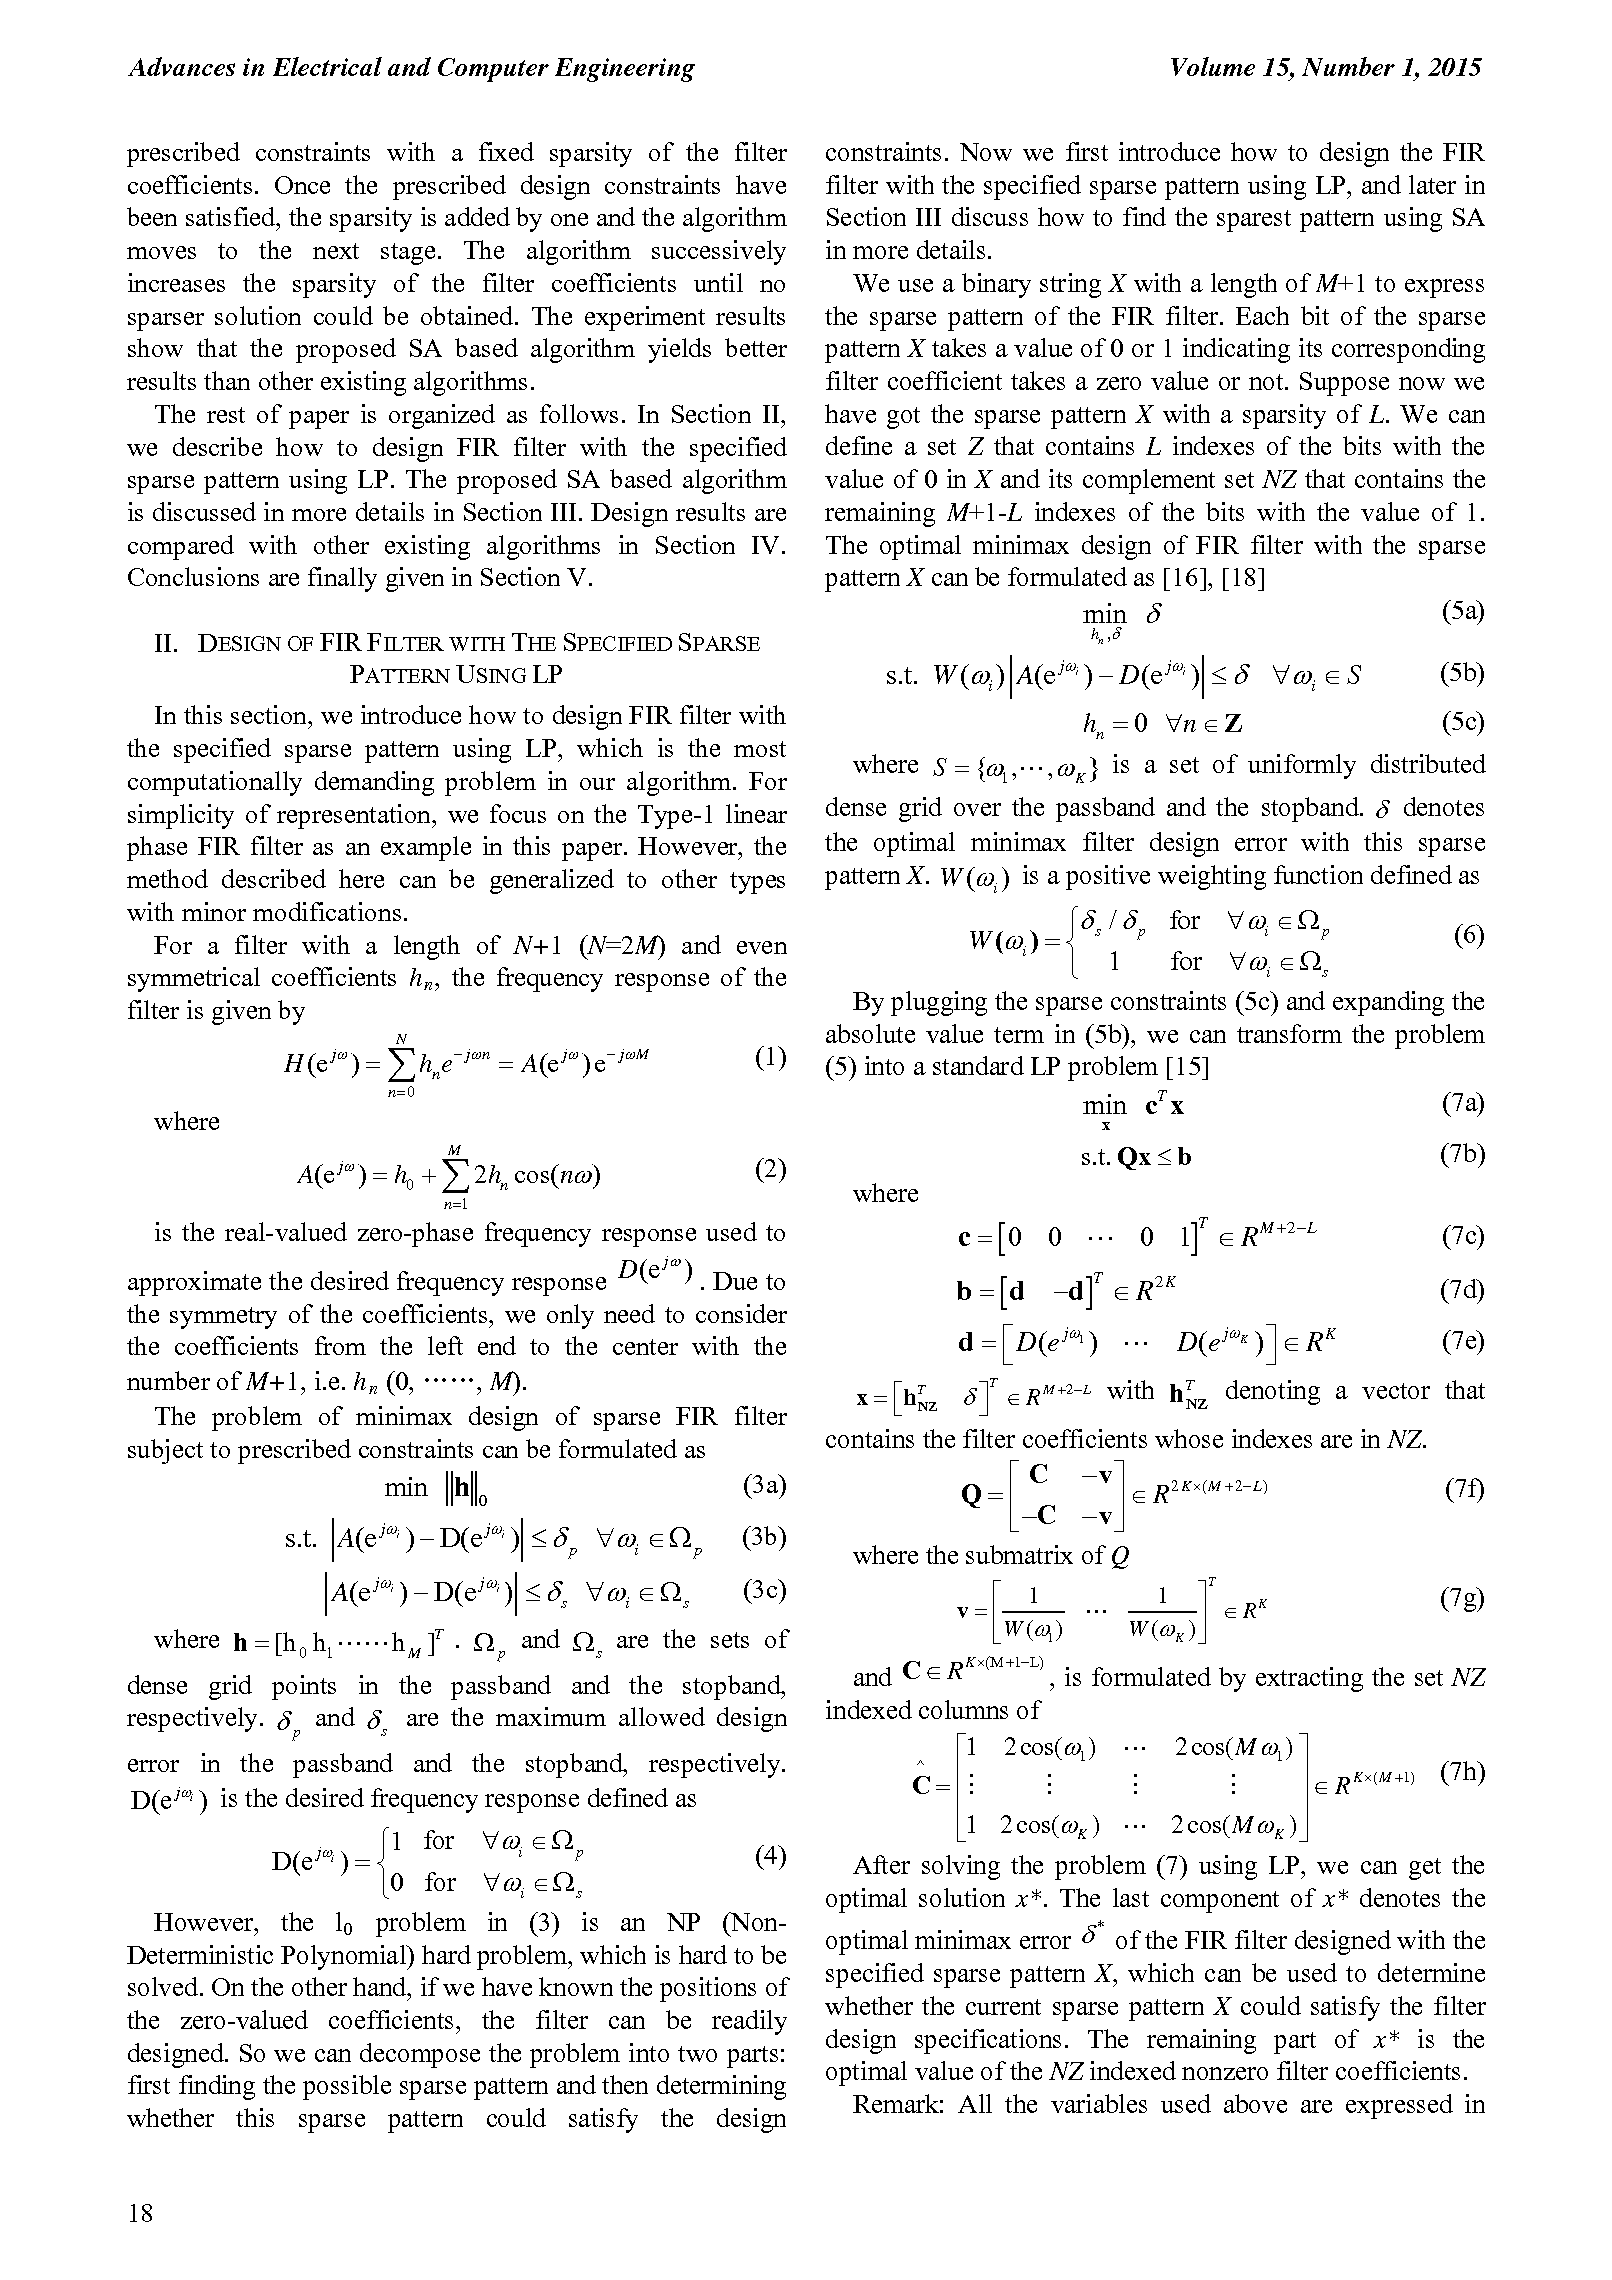 PDF Quickview for paper with DOI:10.4316/AECE.2015.01003